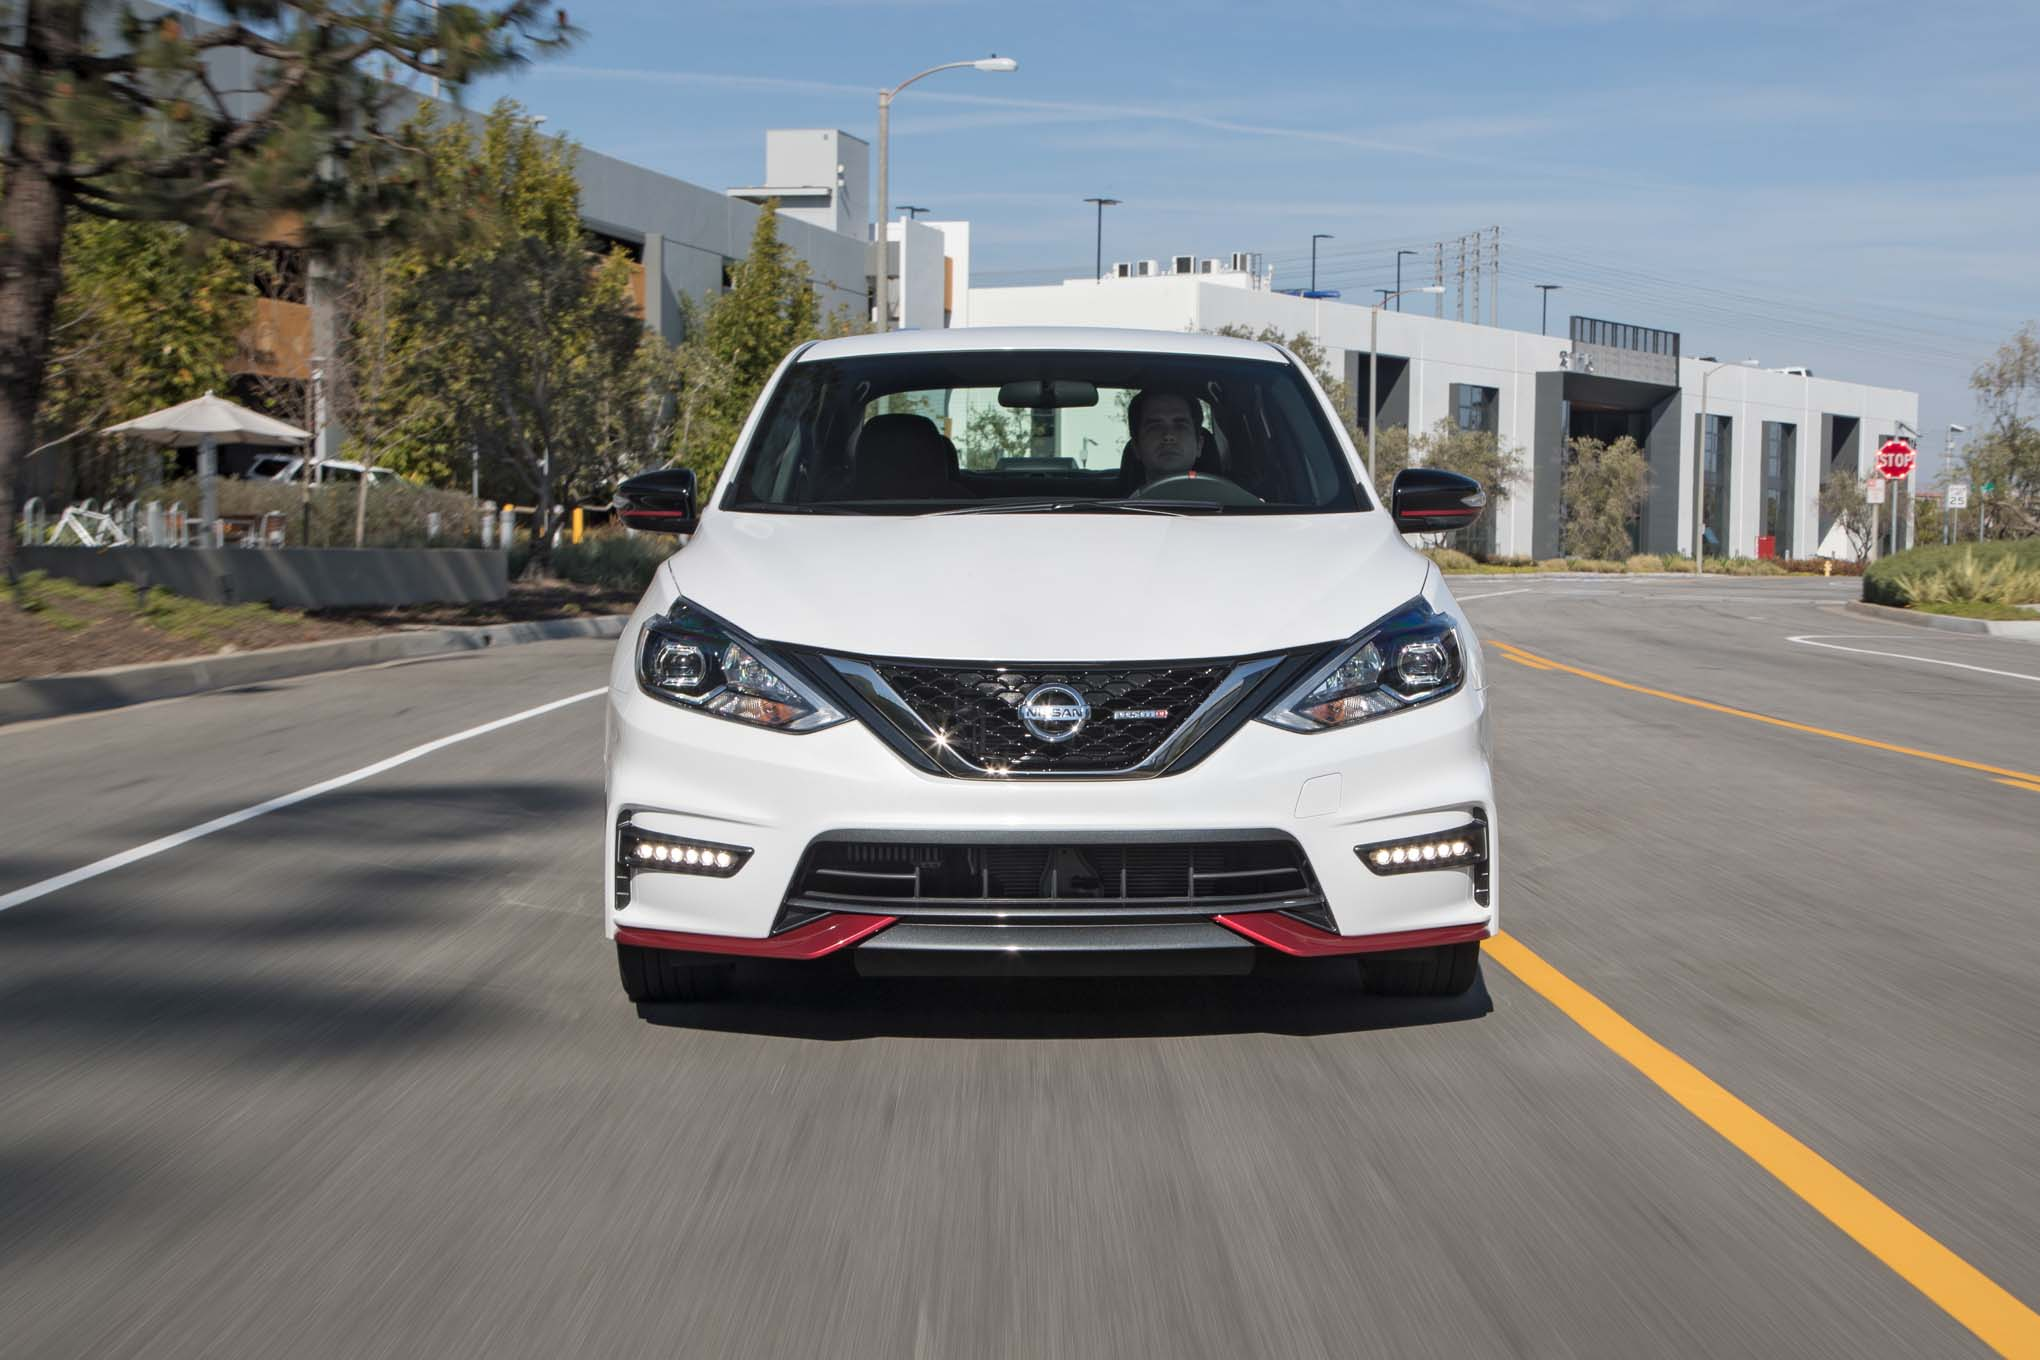 2017 Nissan Sentra NISMO front end in motion